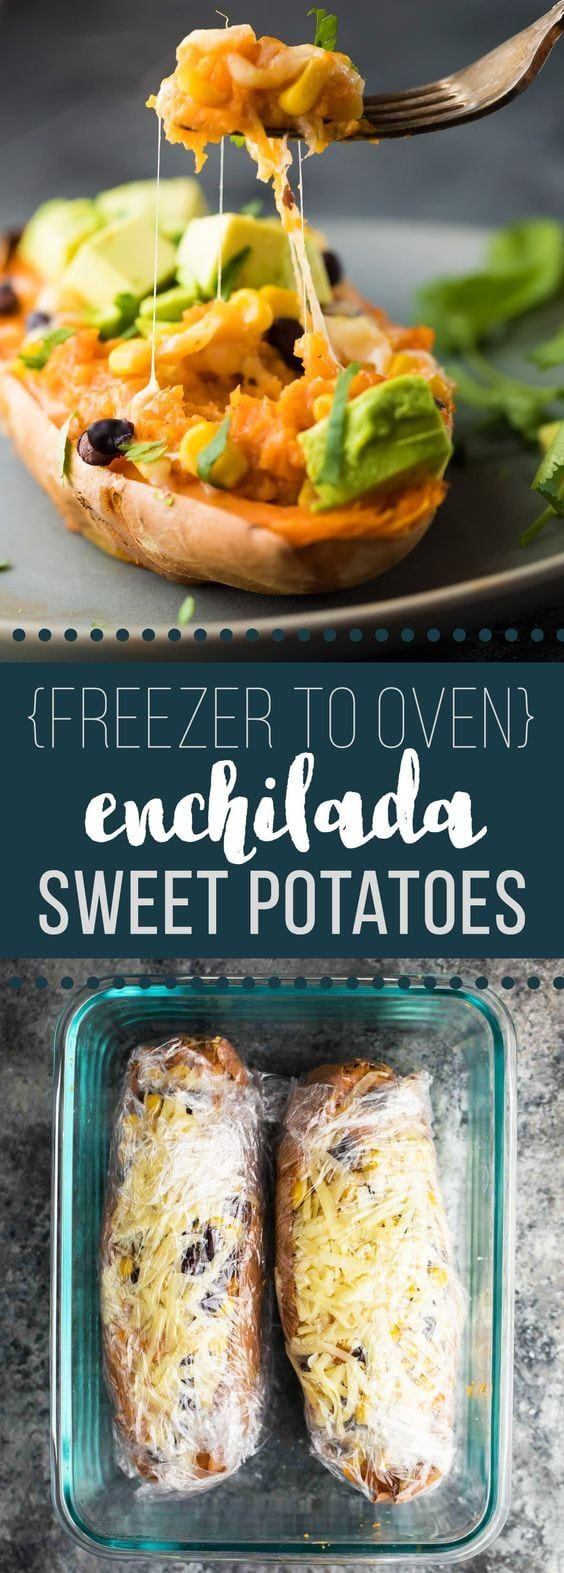 Enchilada Stuffed Sweet Potatoes that can go directly from the freezer into your oven Make them ahead for an easy vegetarian and gluten free meal prep lunch or dinner